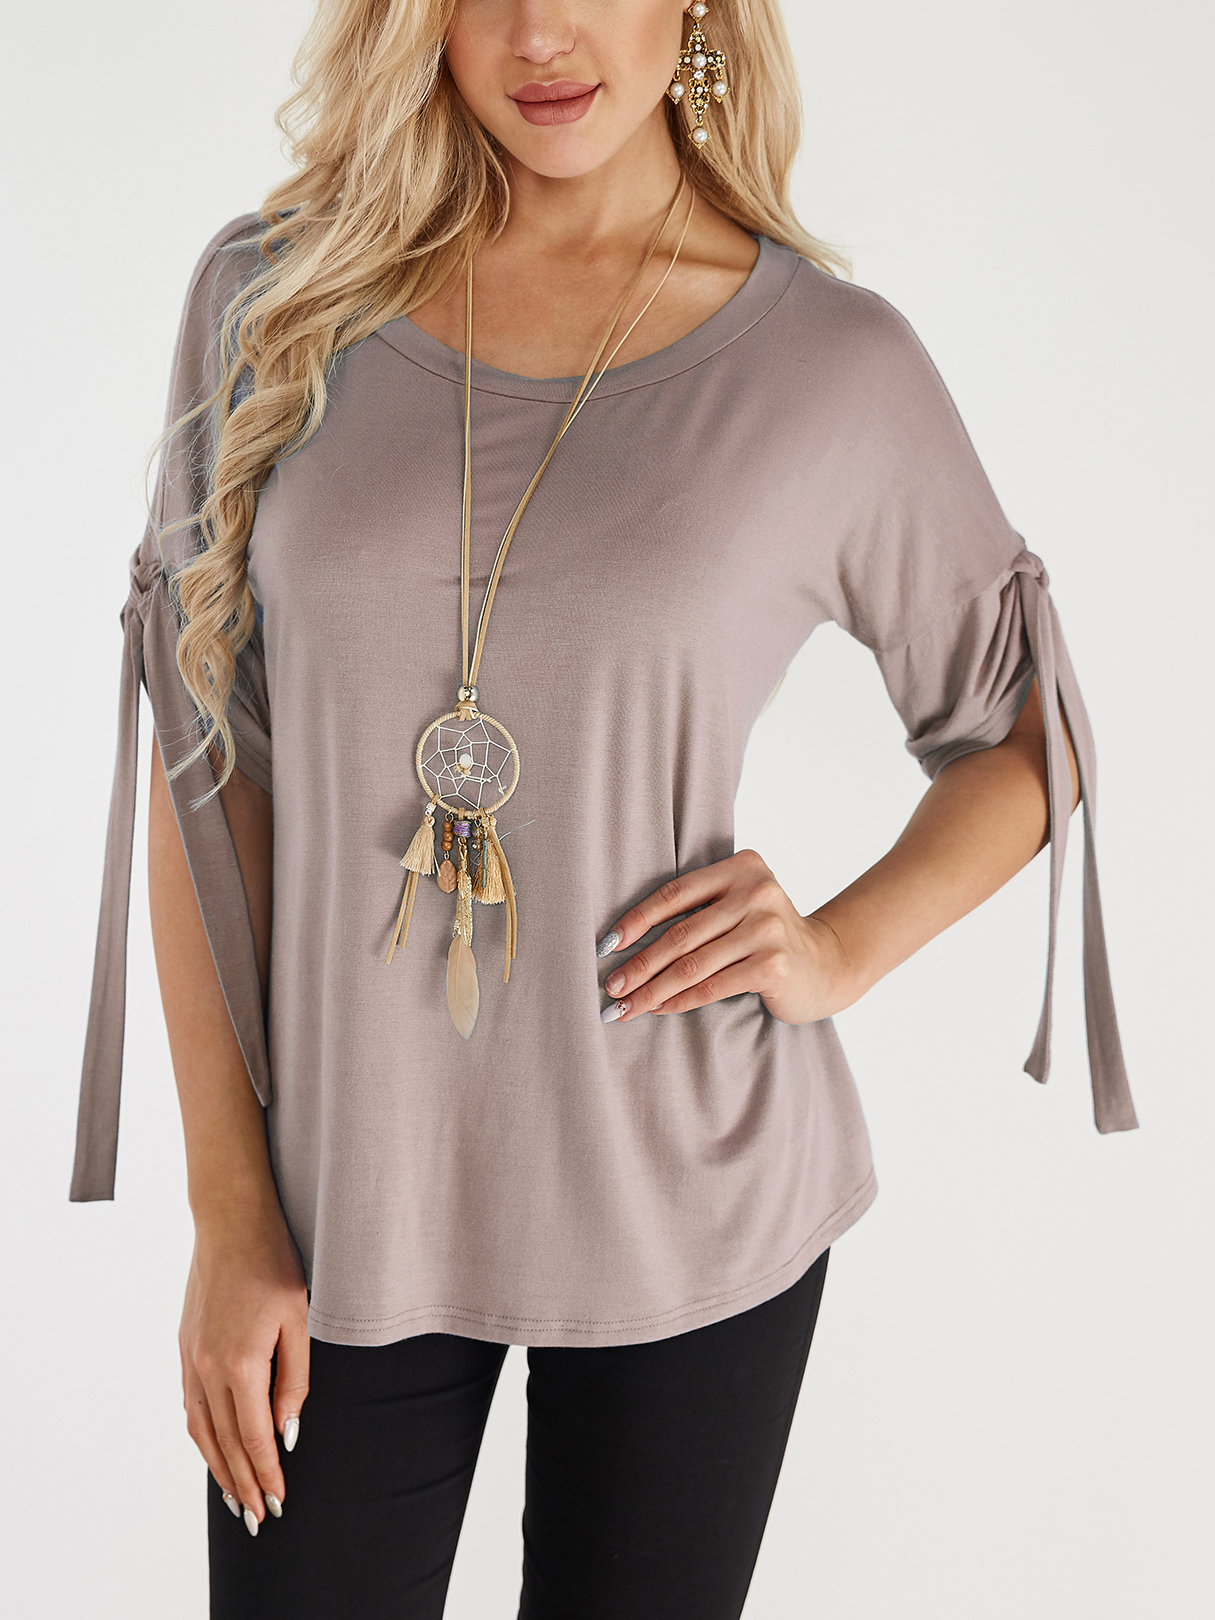 Khaki Lace-up Design Round Neck Short Sleeves T-shirts khaki knitted round neck hollow front design bottoming t shirt